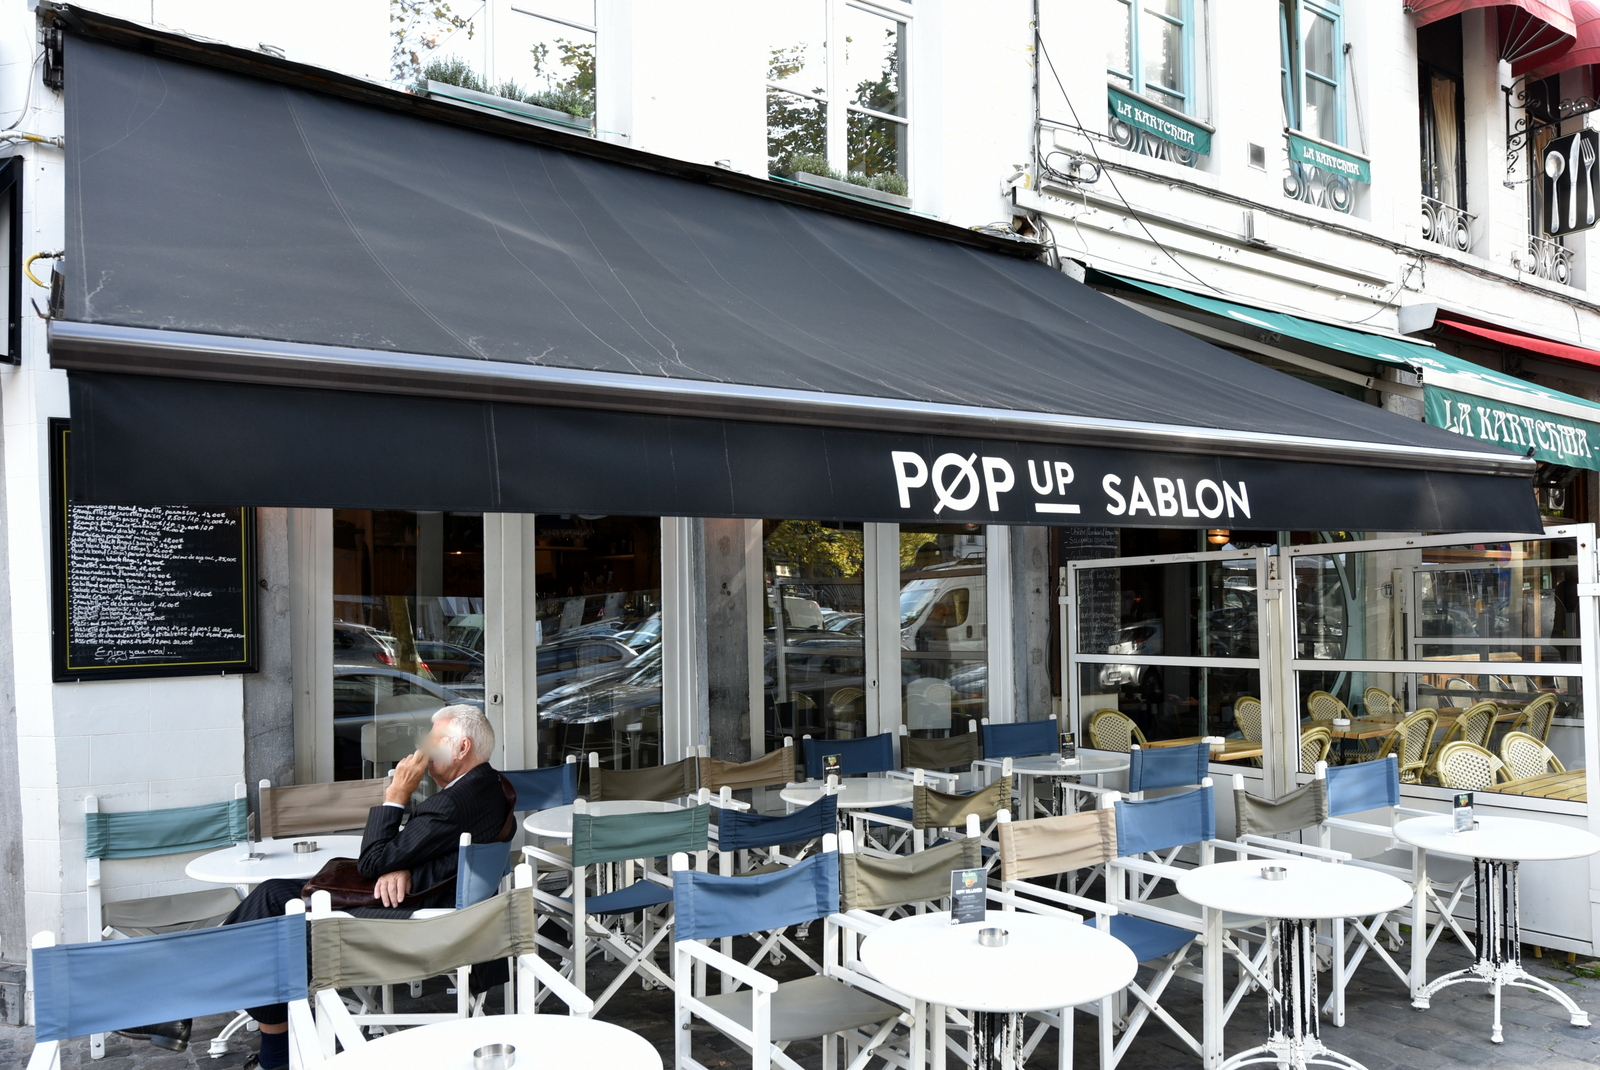 POP-UP Sablon, Restaurants Bruxelles - Brusselslife.be